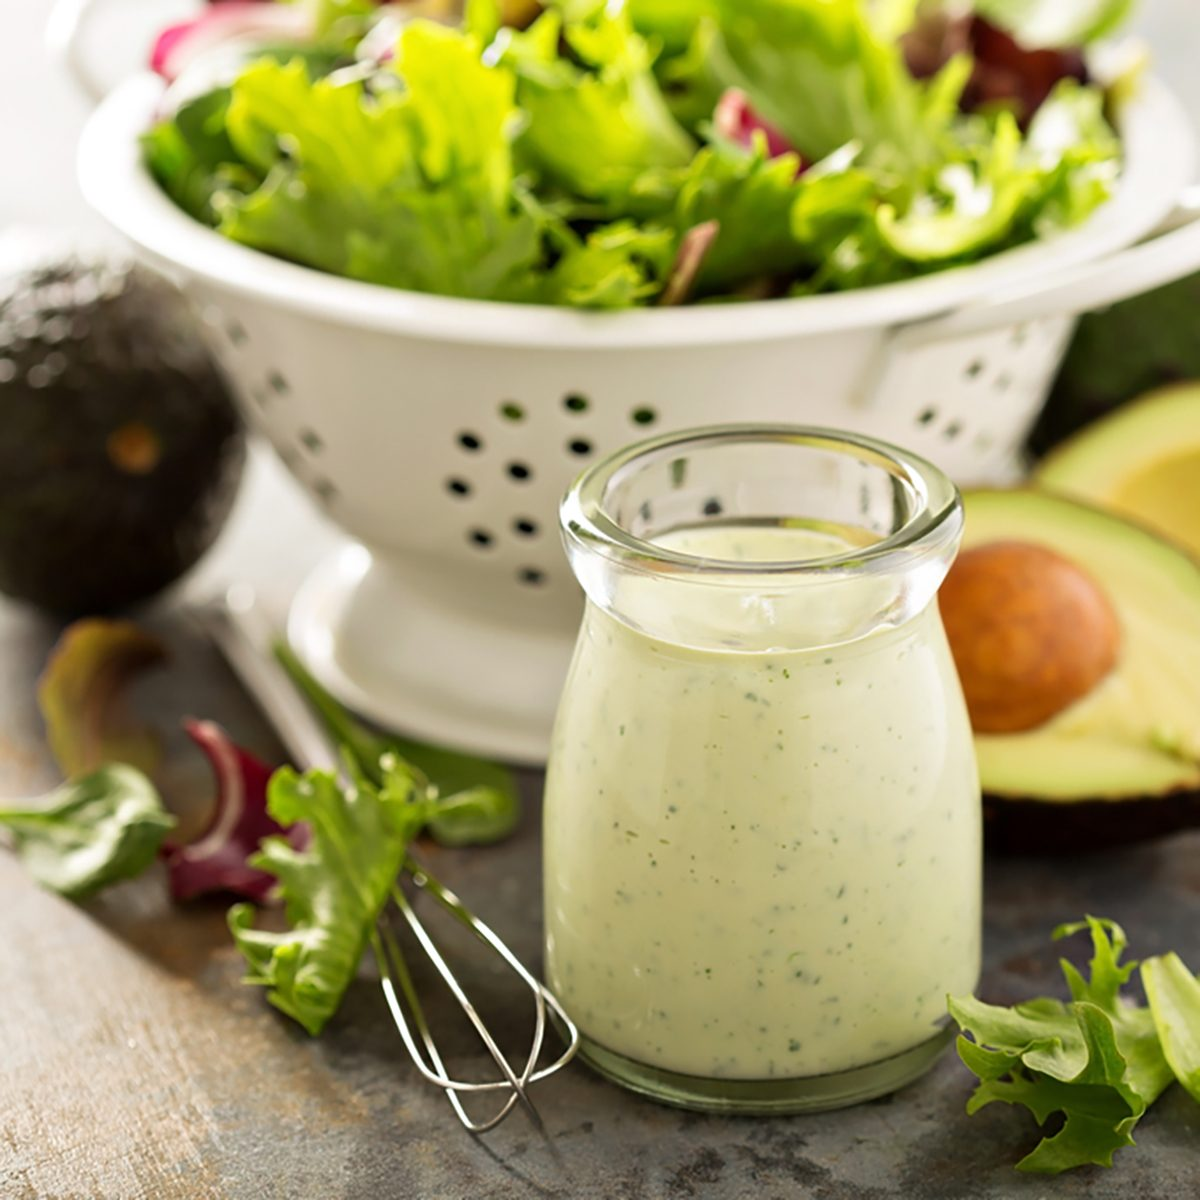 Avocado ranch dressing in small jar with salad leaves in a colander.